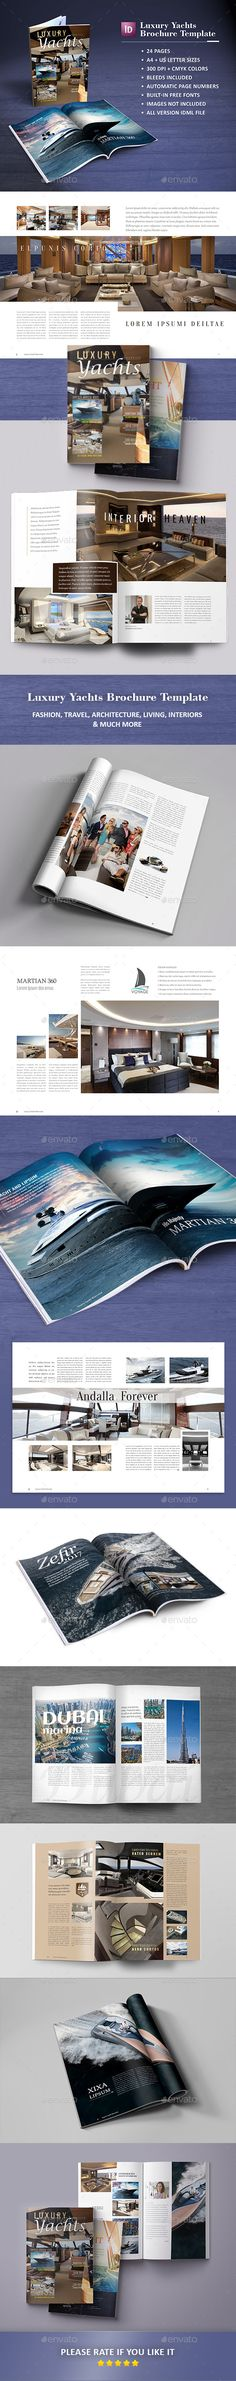 Luxury Yachts Brochure Template